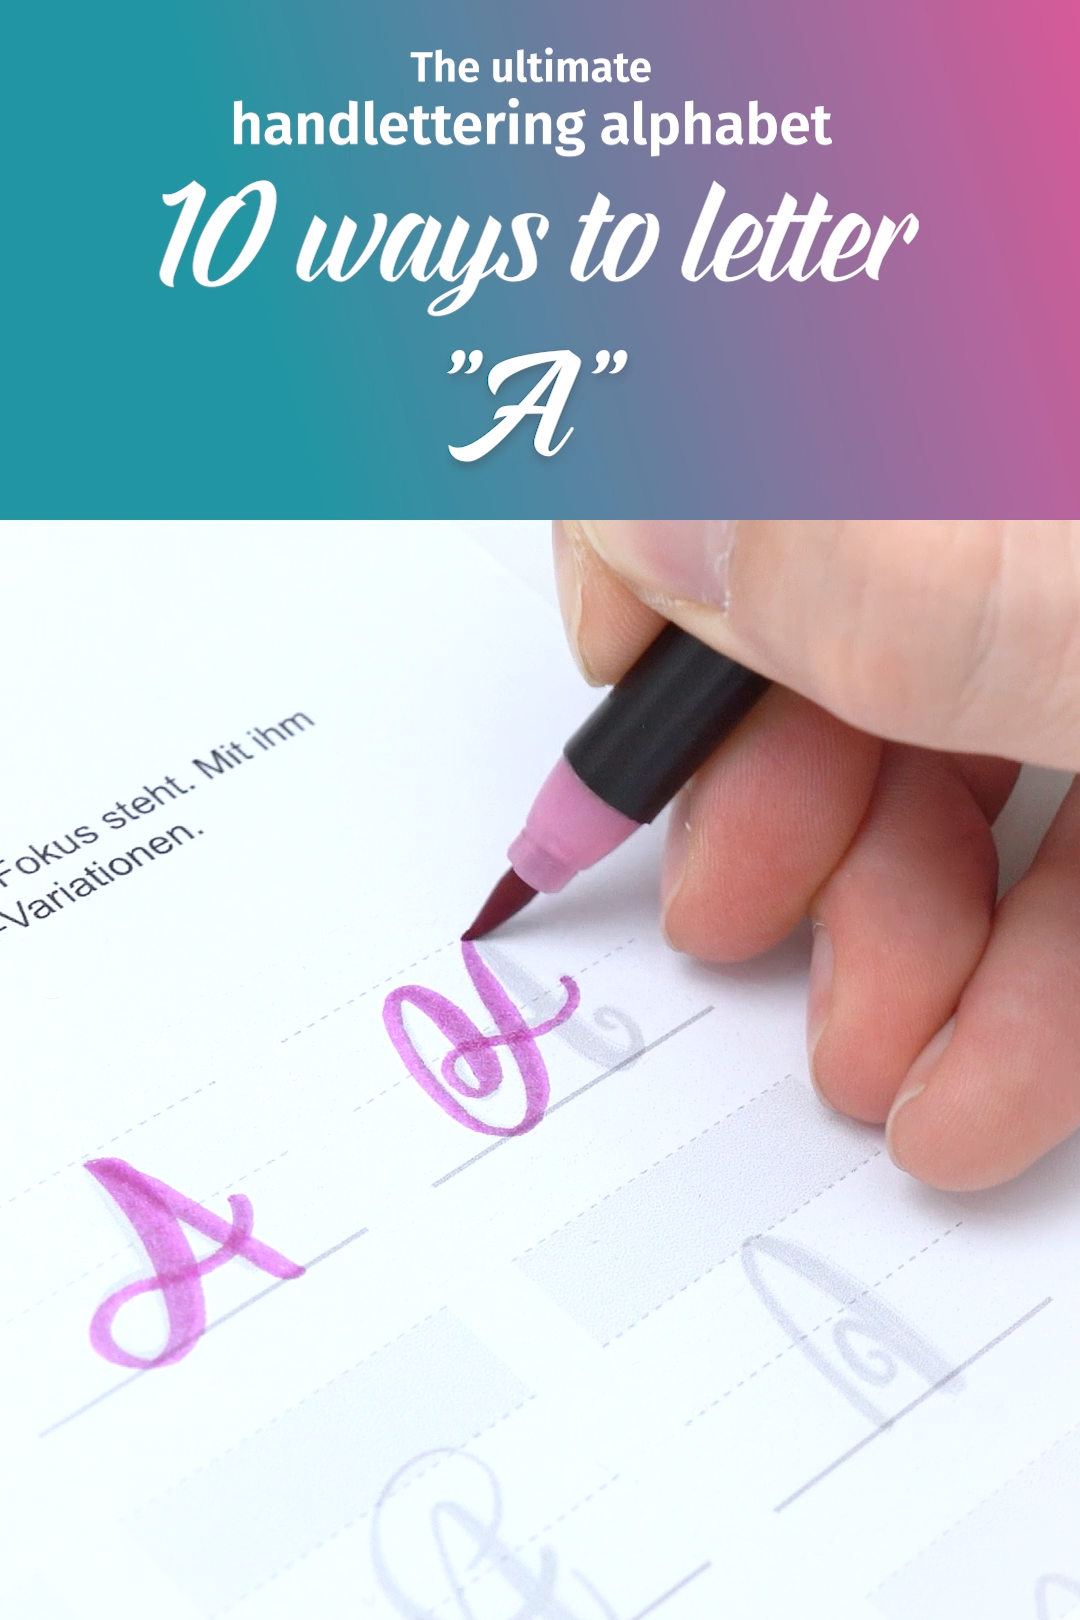 10 ways to letter